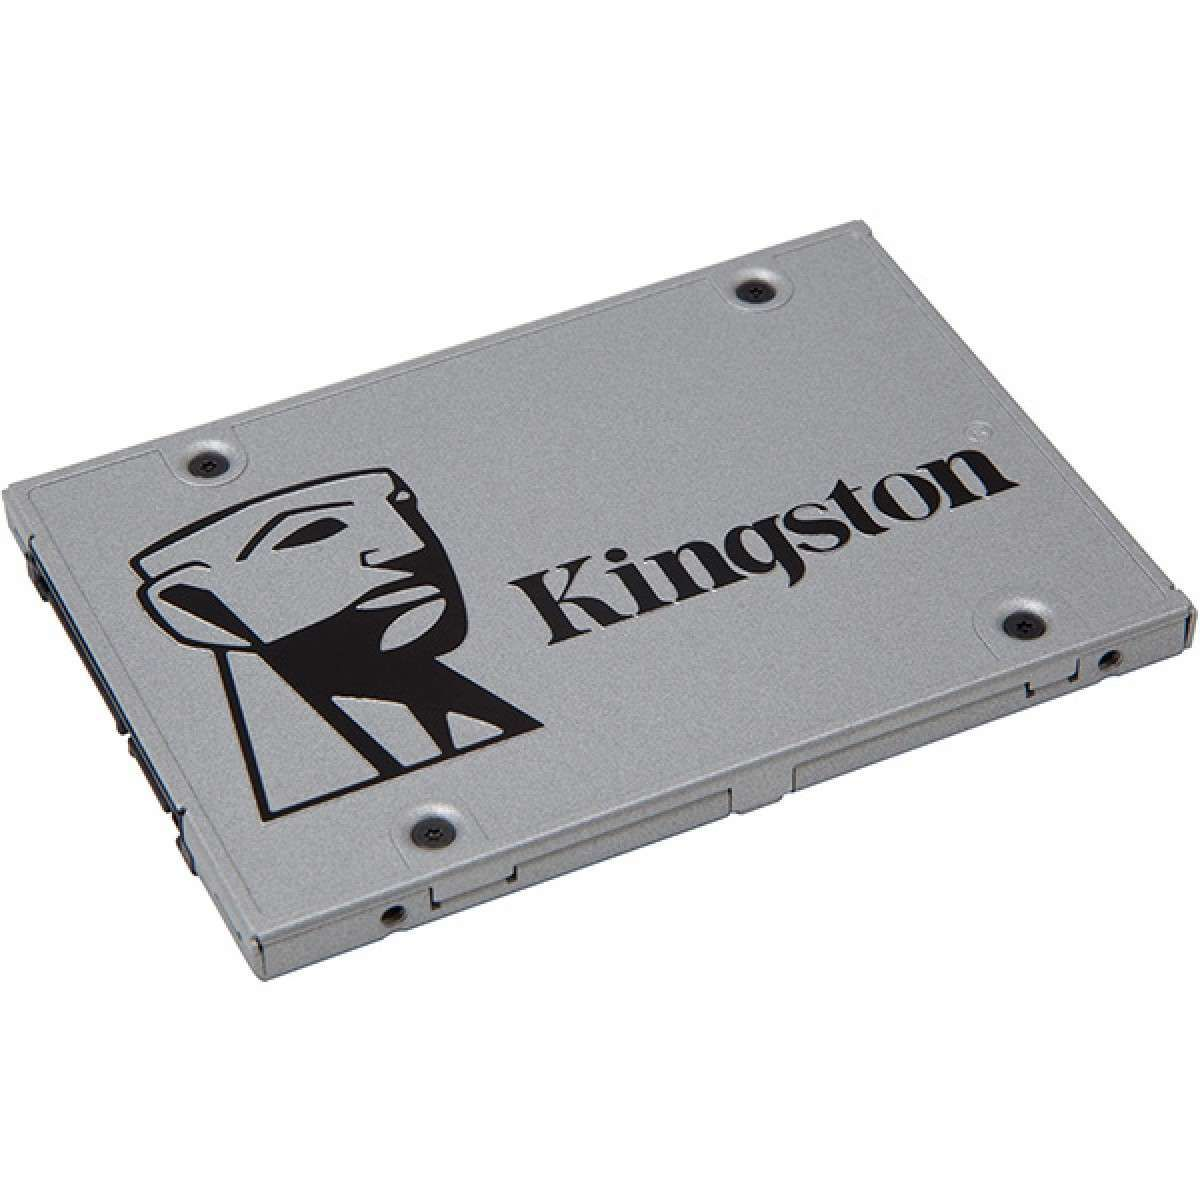 SSD 120GB Kingston Sata3 V400 2.5